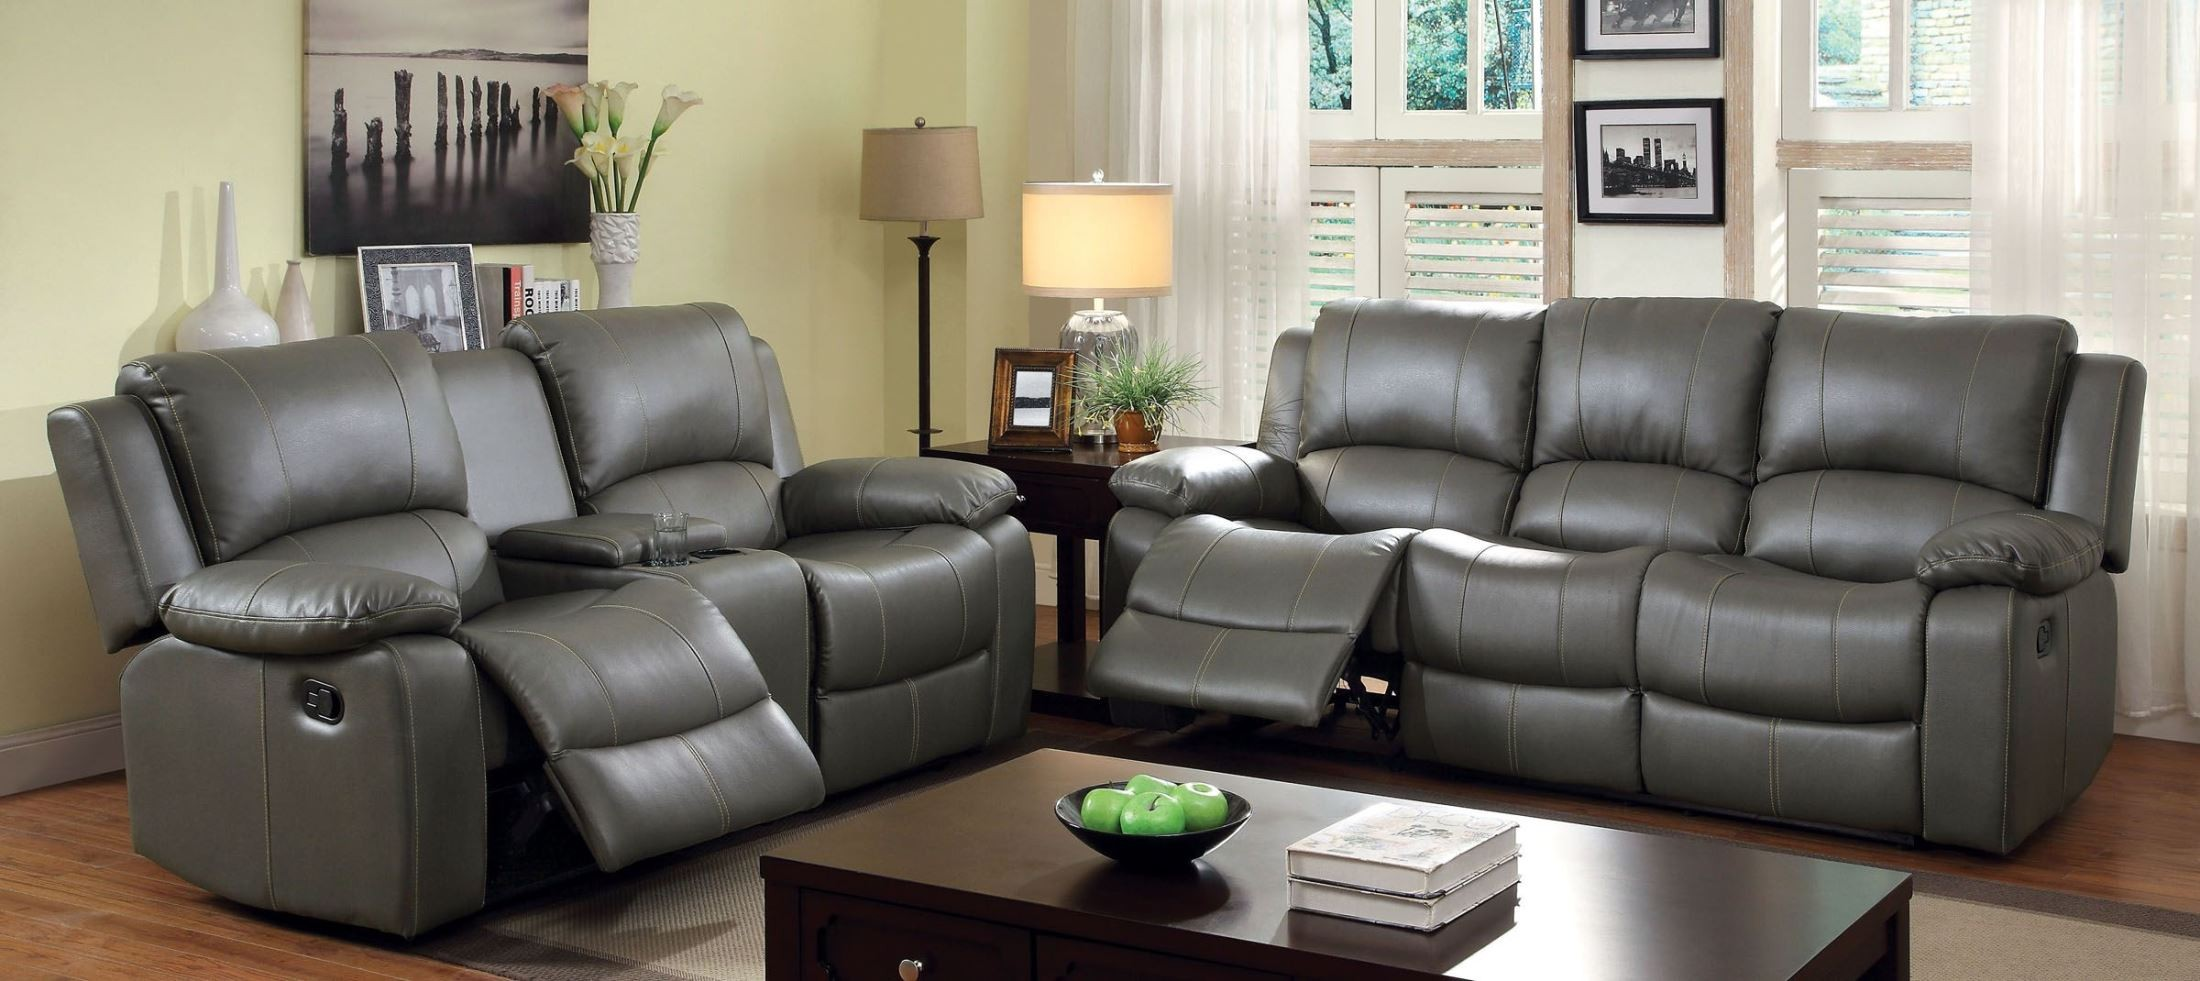 Sarles Gray Drop Down Table Reclining Living Room Set From